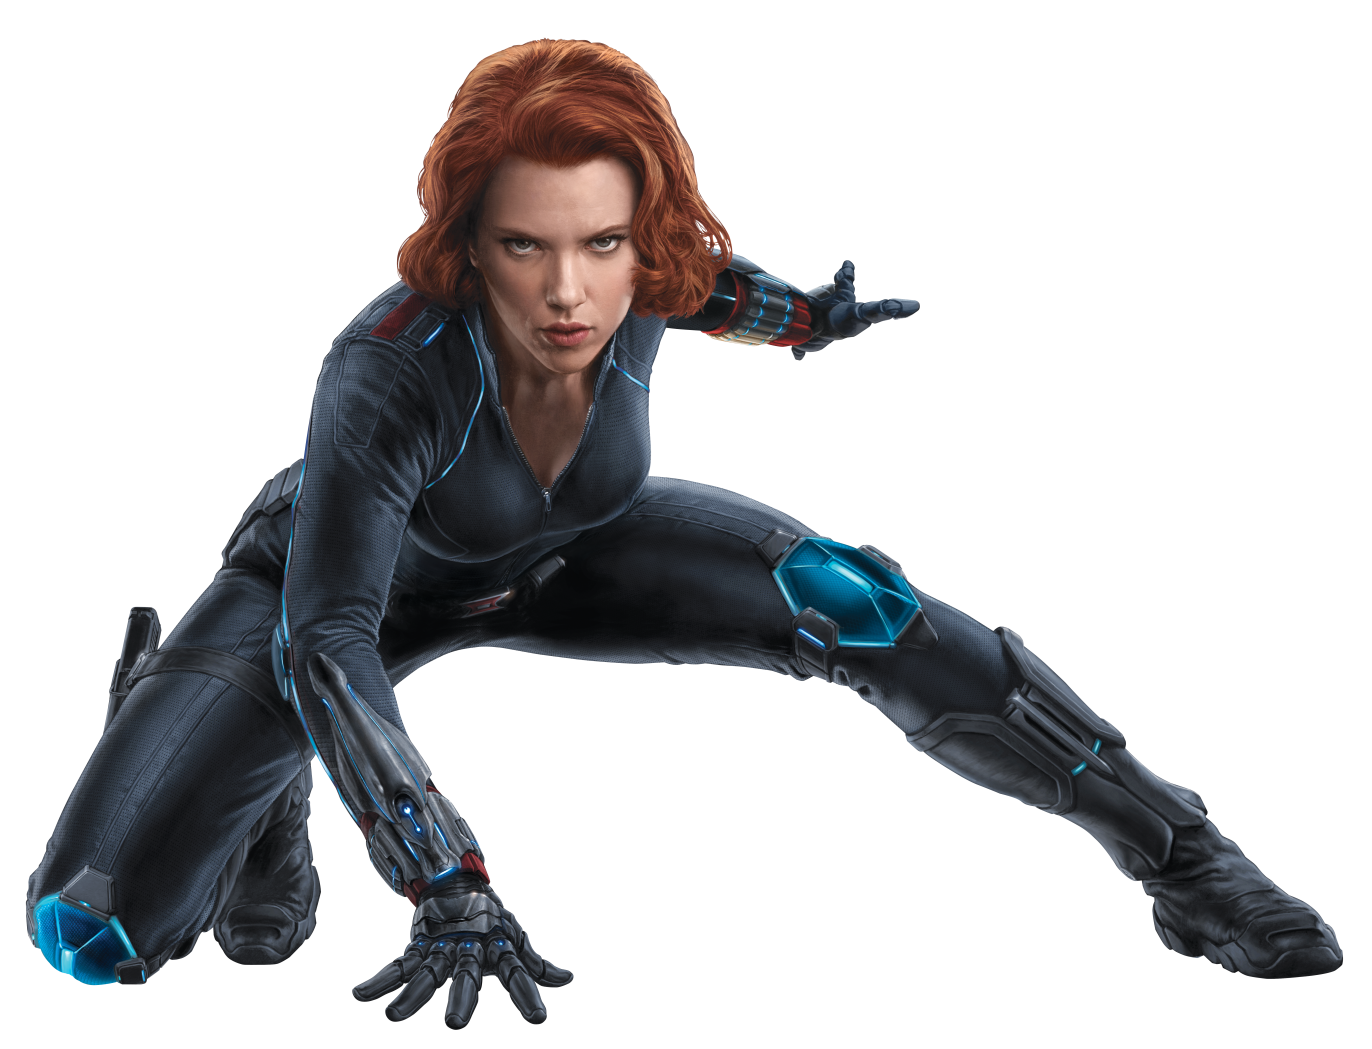 Marvel black widow logo png. Pin by dinesh mehta